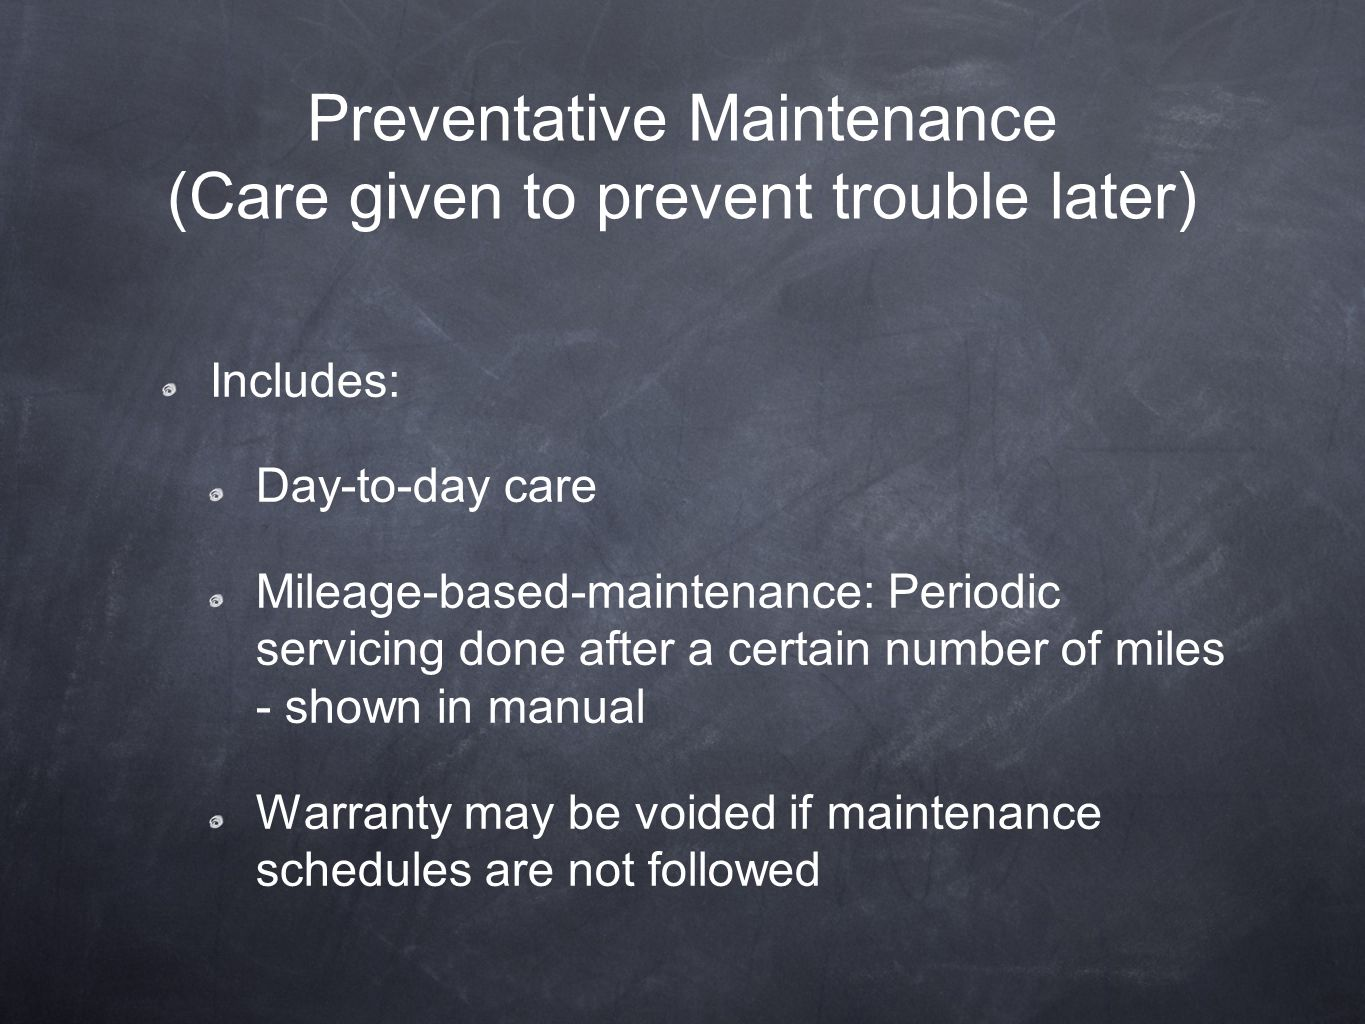 Preventative Maintenance (Care given to prevent trouble later)